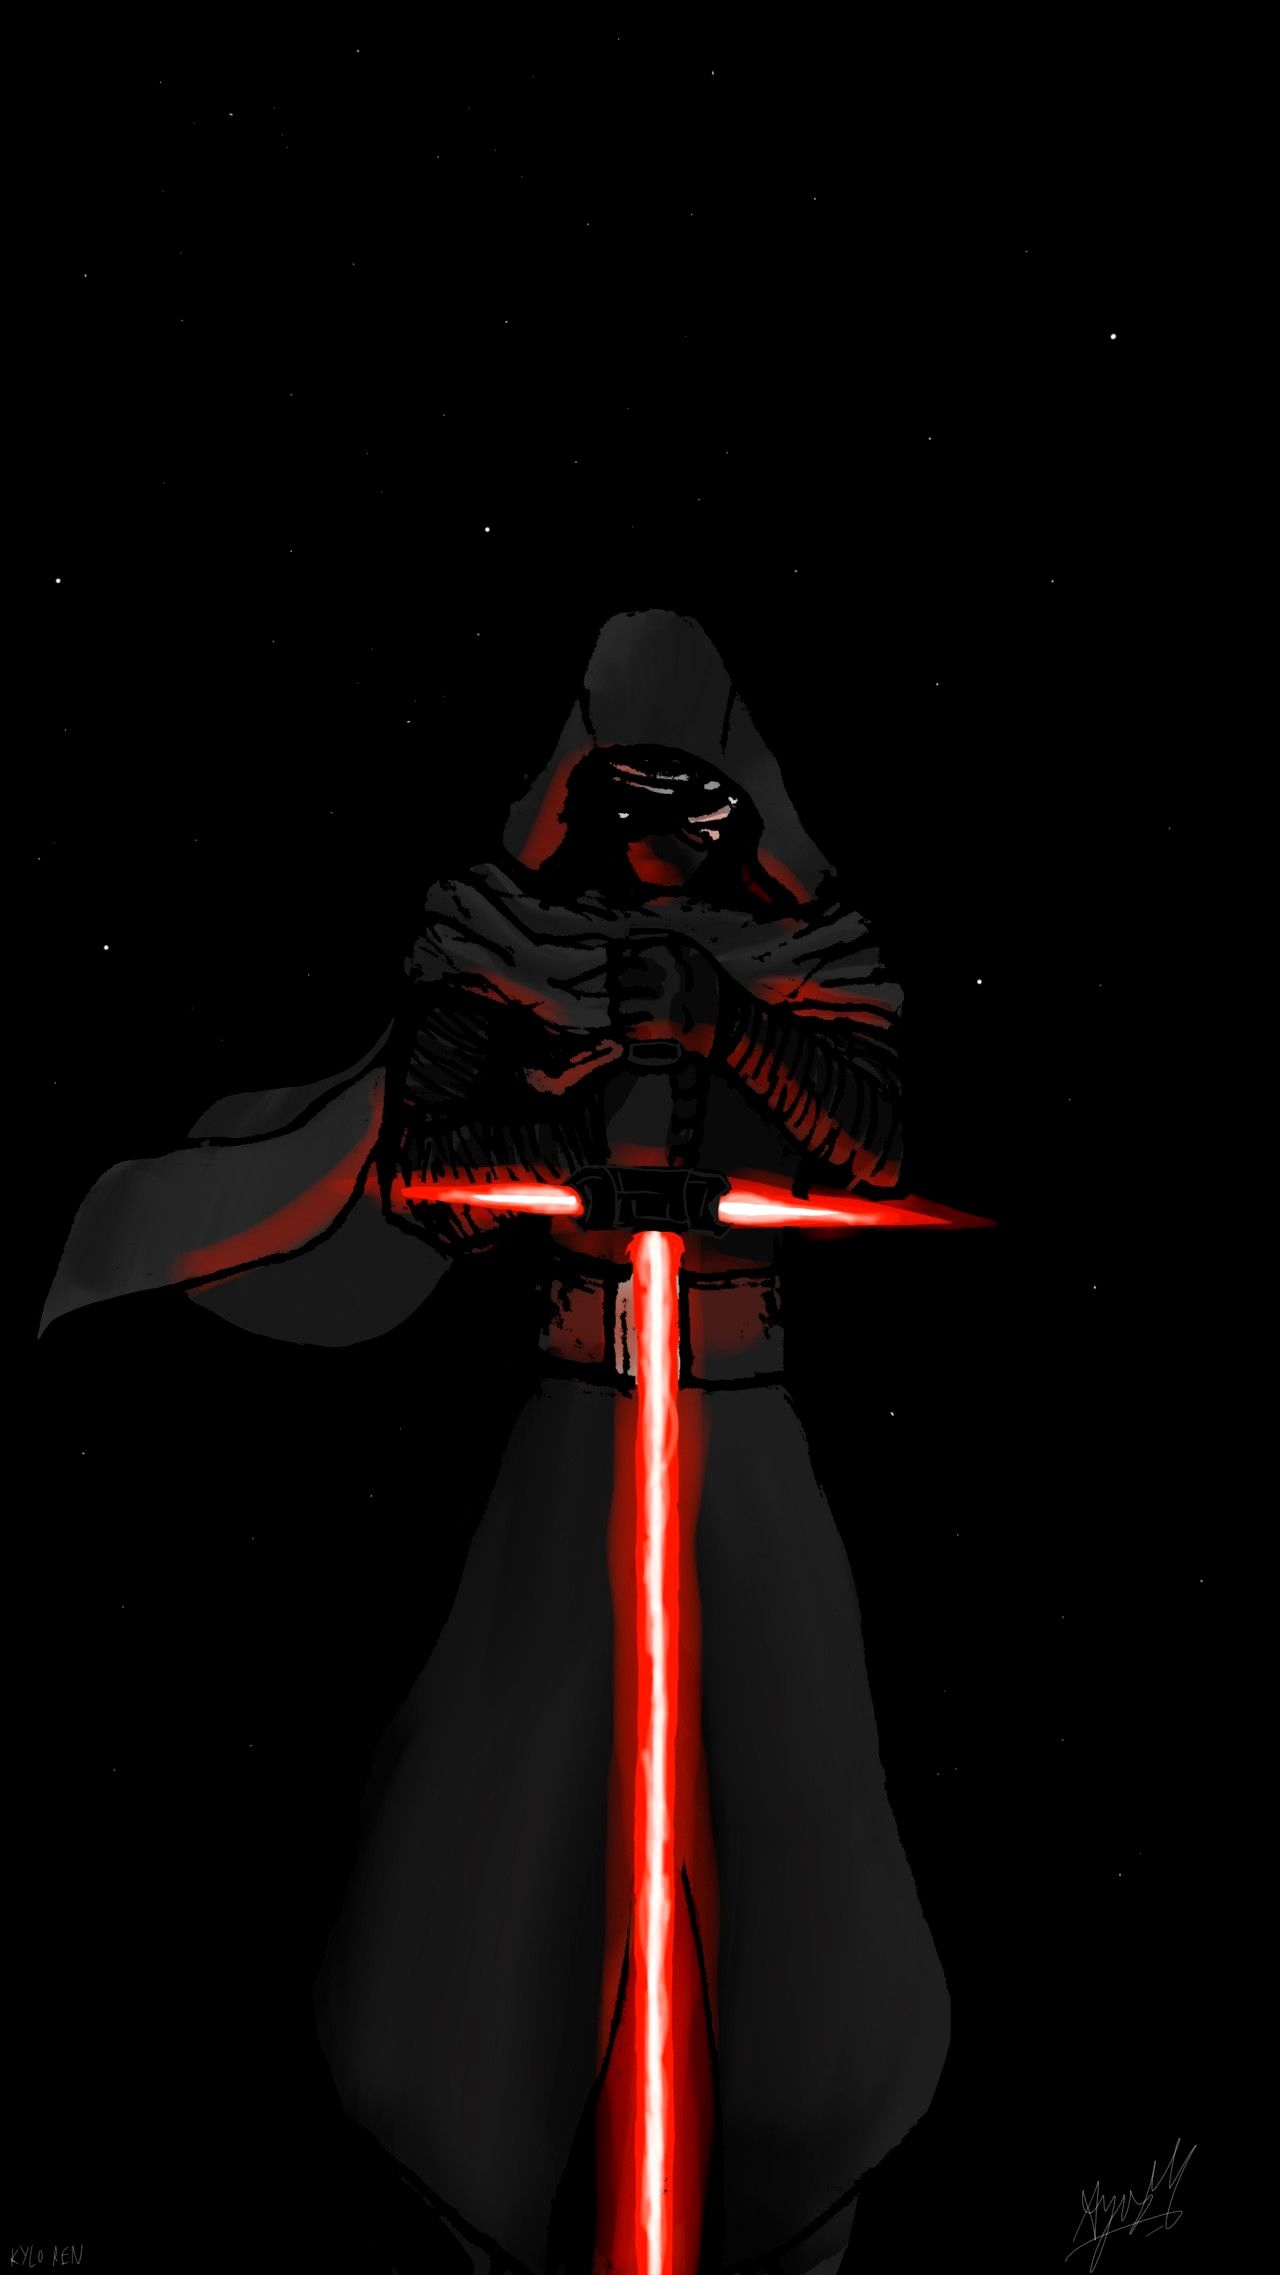 Kylo Ren Wallpaper 4k Iphone Gallery Kylo Ren Wallpaper Star Wars Wallpaper Star Wars Background